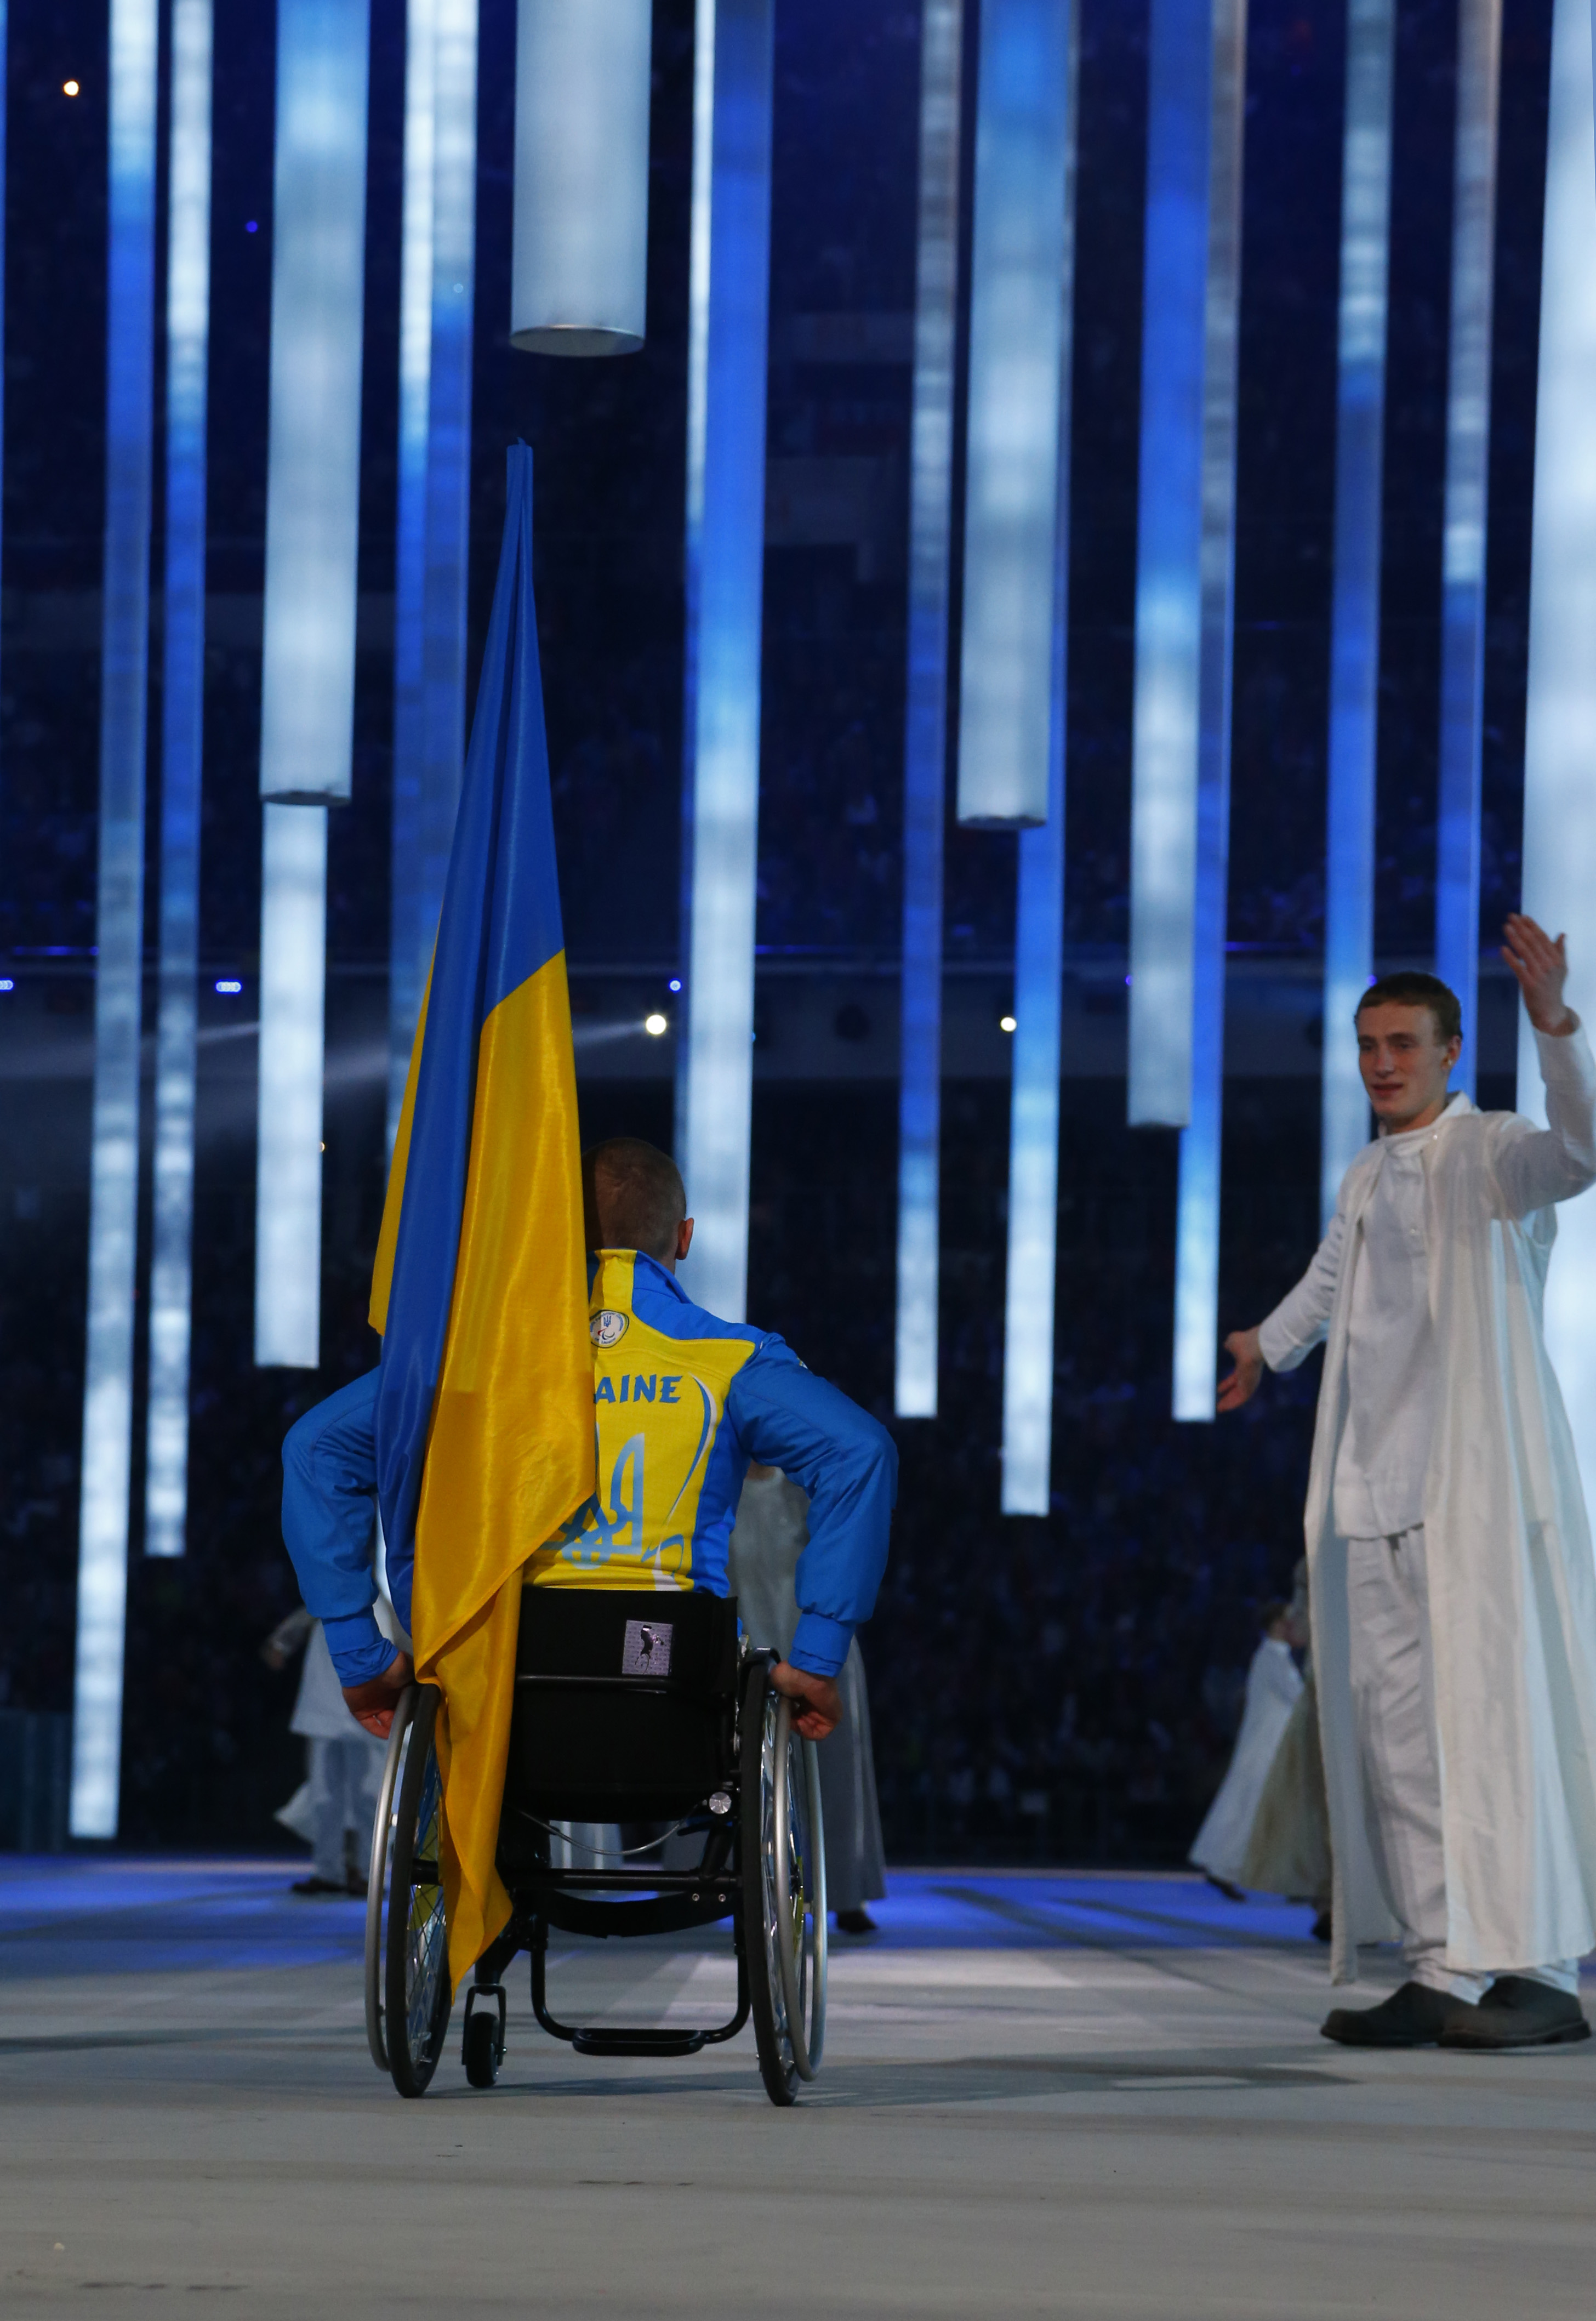 CAPTION ADDS NAME OF ATHLETE - Biathelete Mykhaylo Tkachenko, representing Ukraine, enters the arena during the opening ceremony of the 2014 Winter Paralympics at the Fisht Olympic stadium  in Sochi, Russia, Friday, March 7, 2014.  (AP Photo/Dmitry Lovetsky)